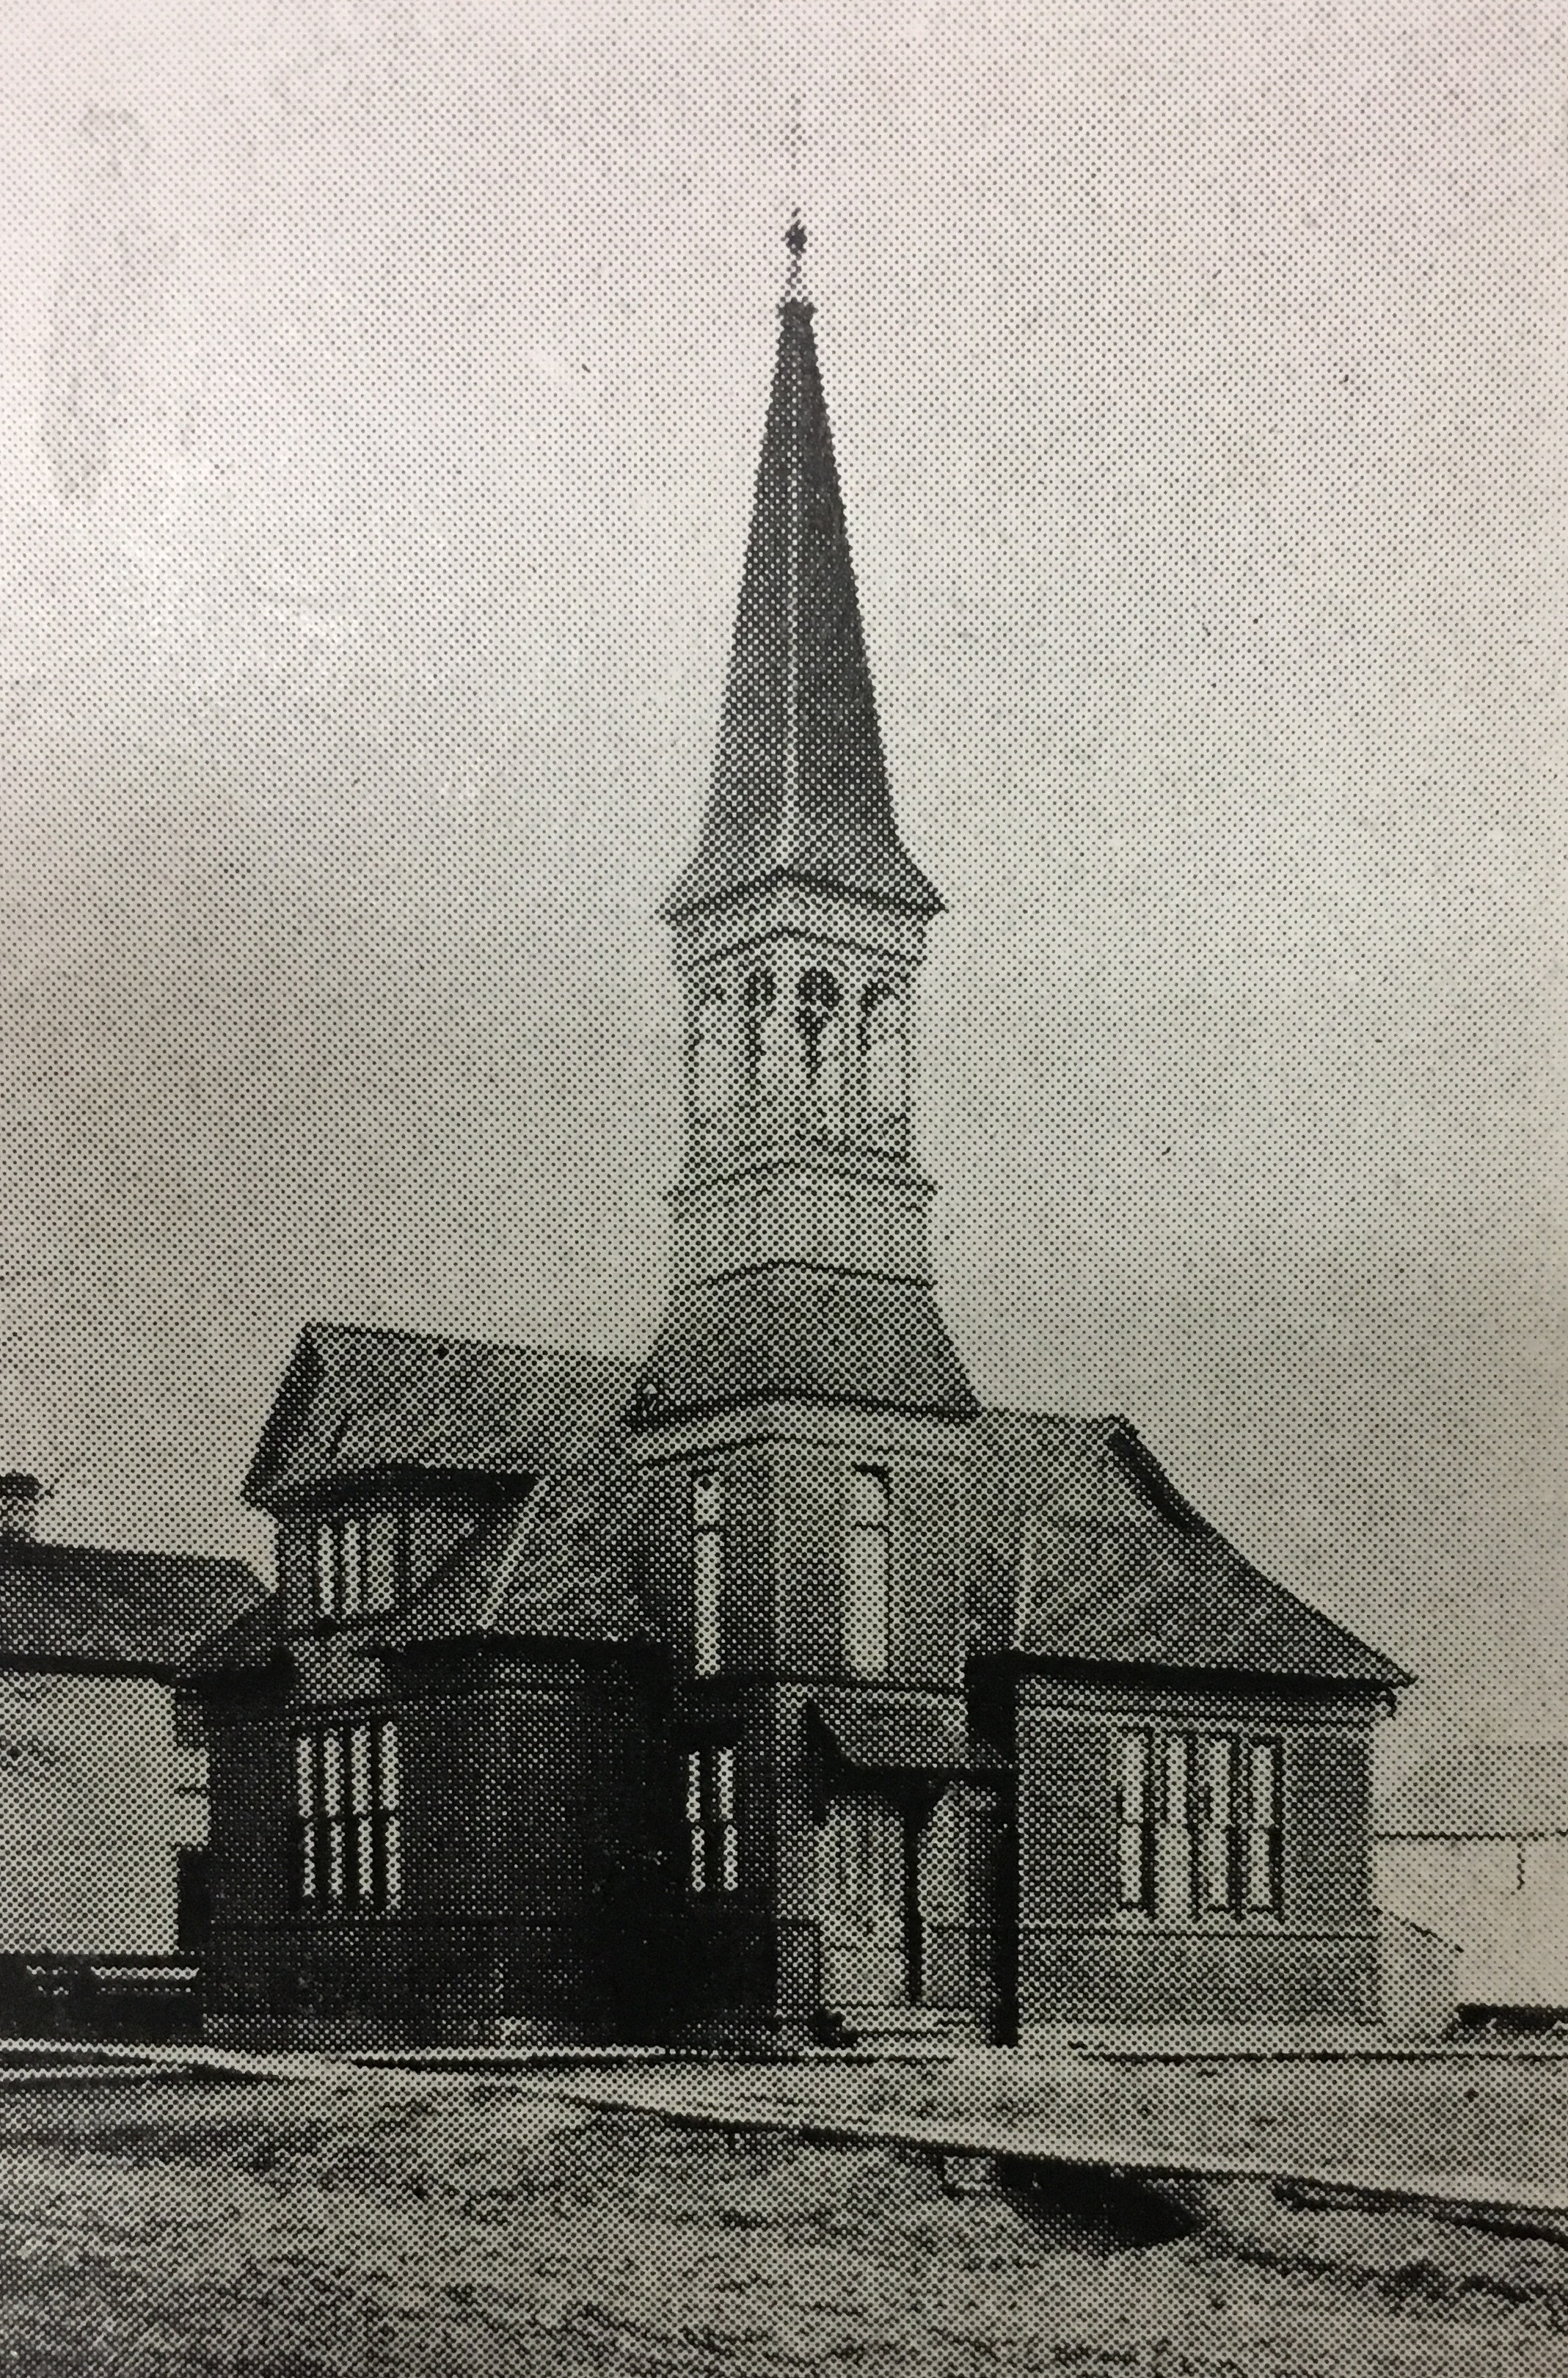 The church sometime after its construction. Courtesy of the Ceredo Historical Society Museum.